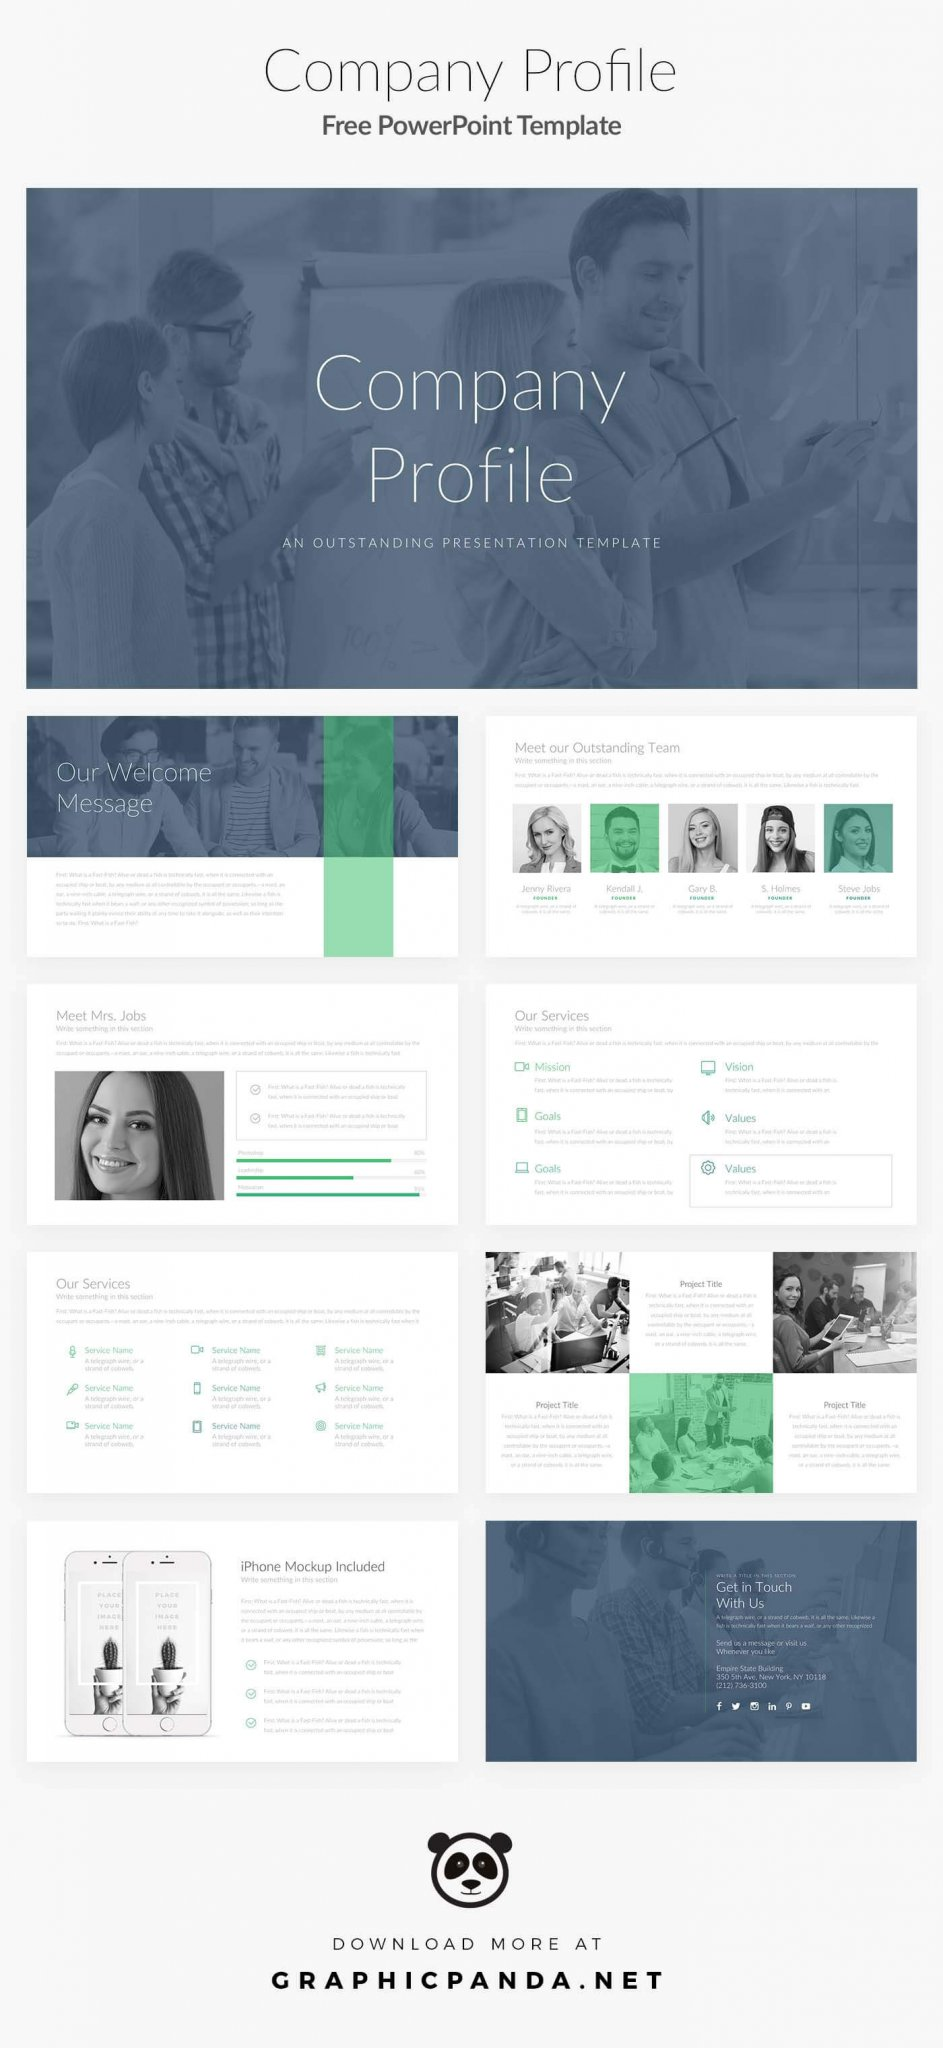 Free PowerPoint Template Company Profile   Best Free Powerpoint Template  2017  Corporate Profile Template